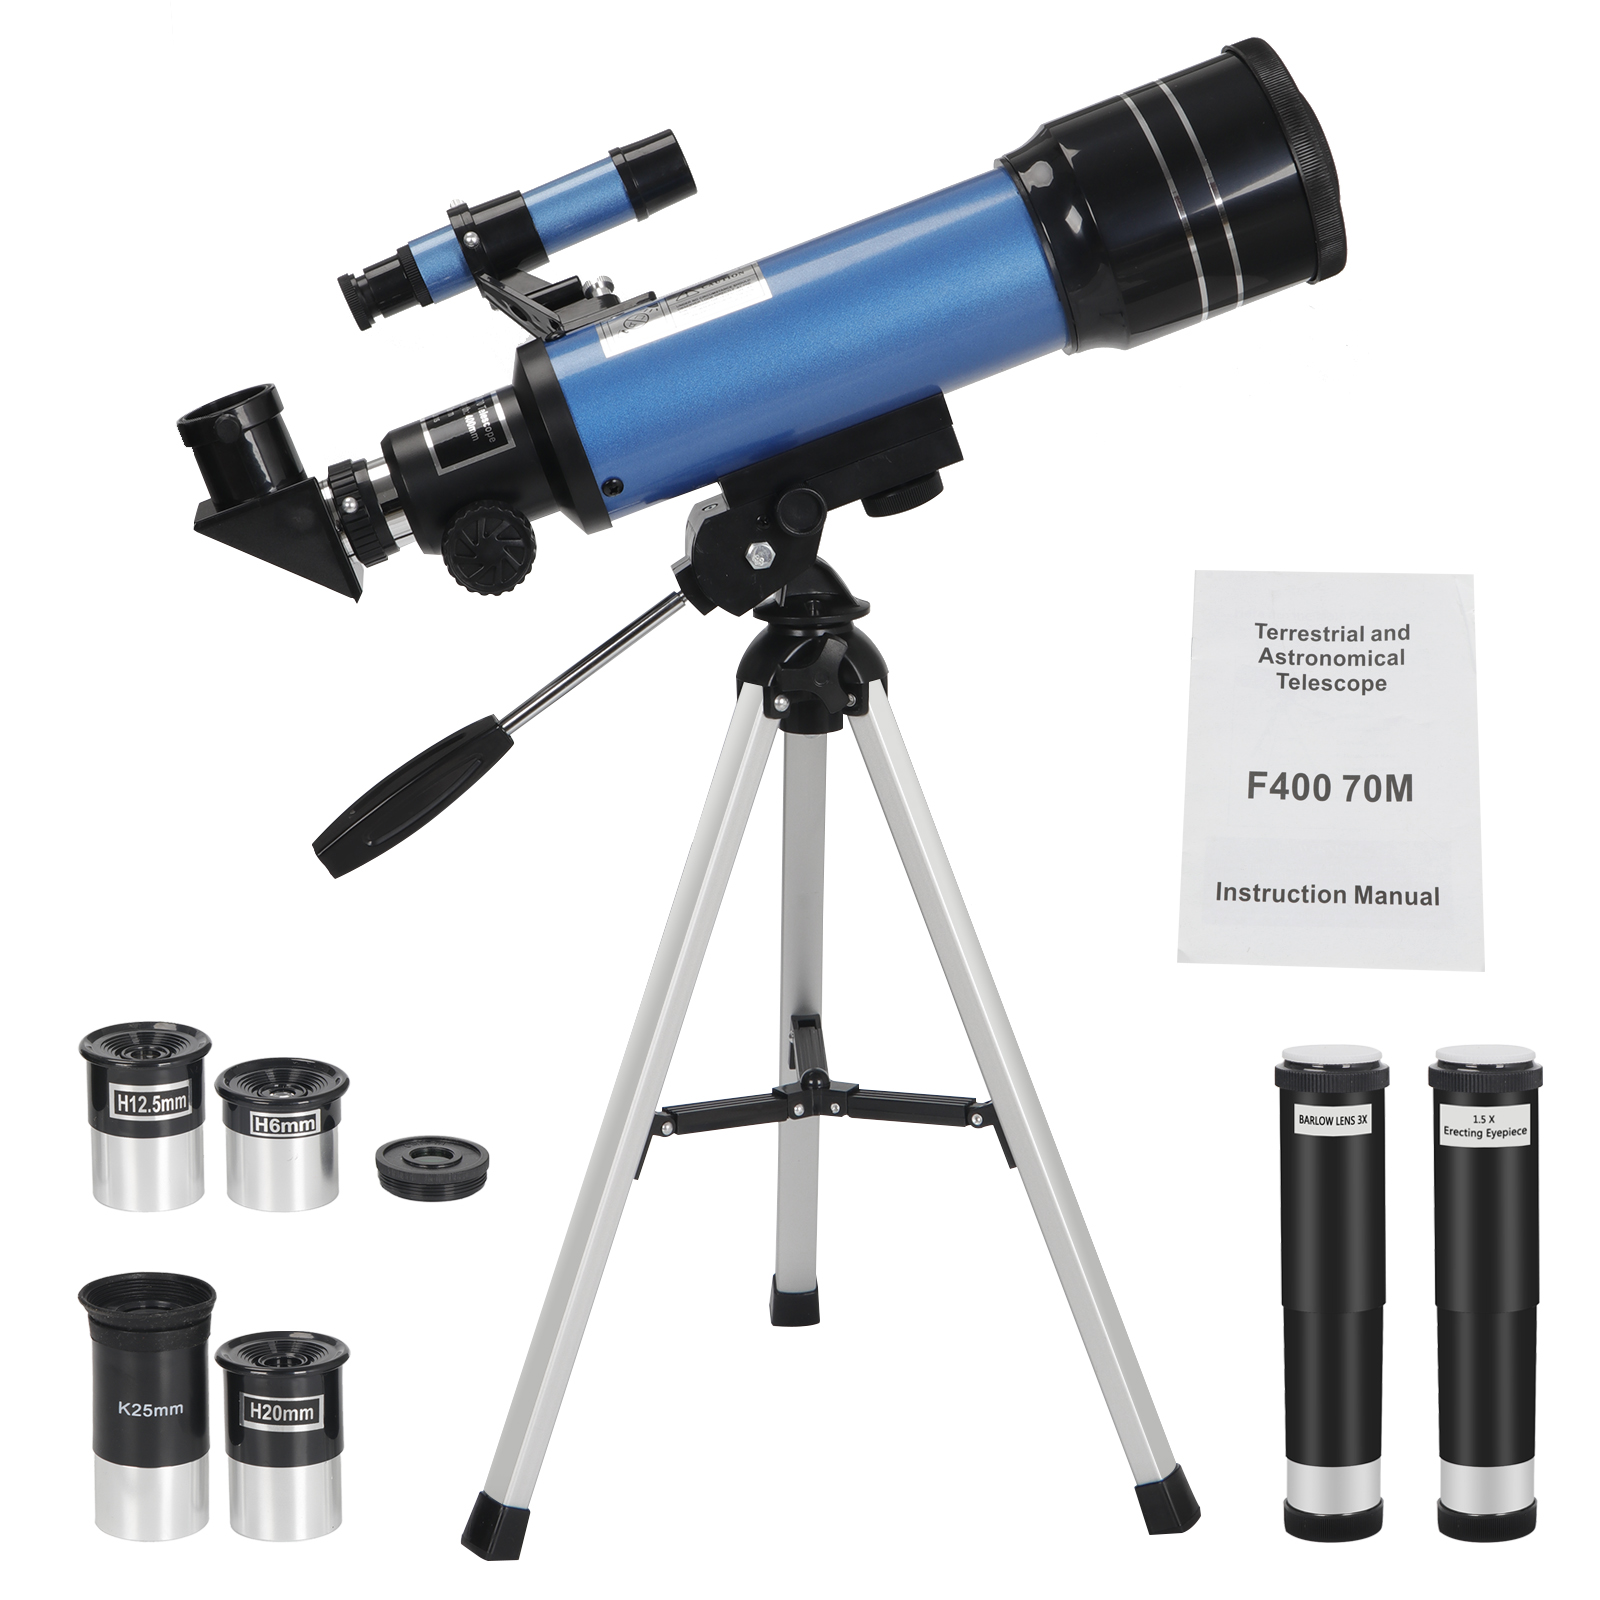 Zeny 70mm Refractor Telescope with Tripod & Finder Scope, Portable Telescope for Kids & Astronomy Beginners, Travel Scope with 3 Magnification eyepieces & Moon Mirror